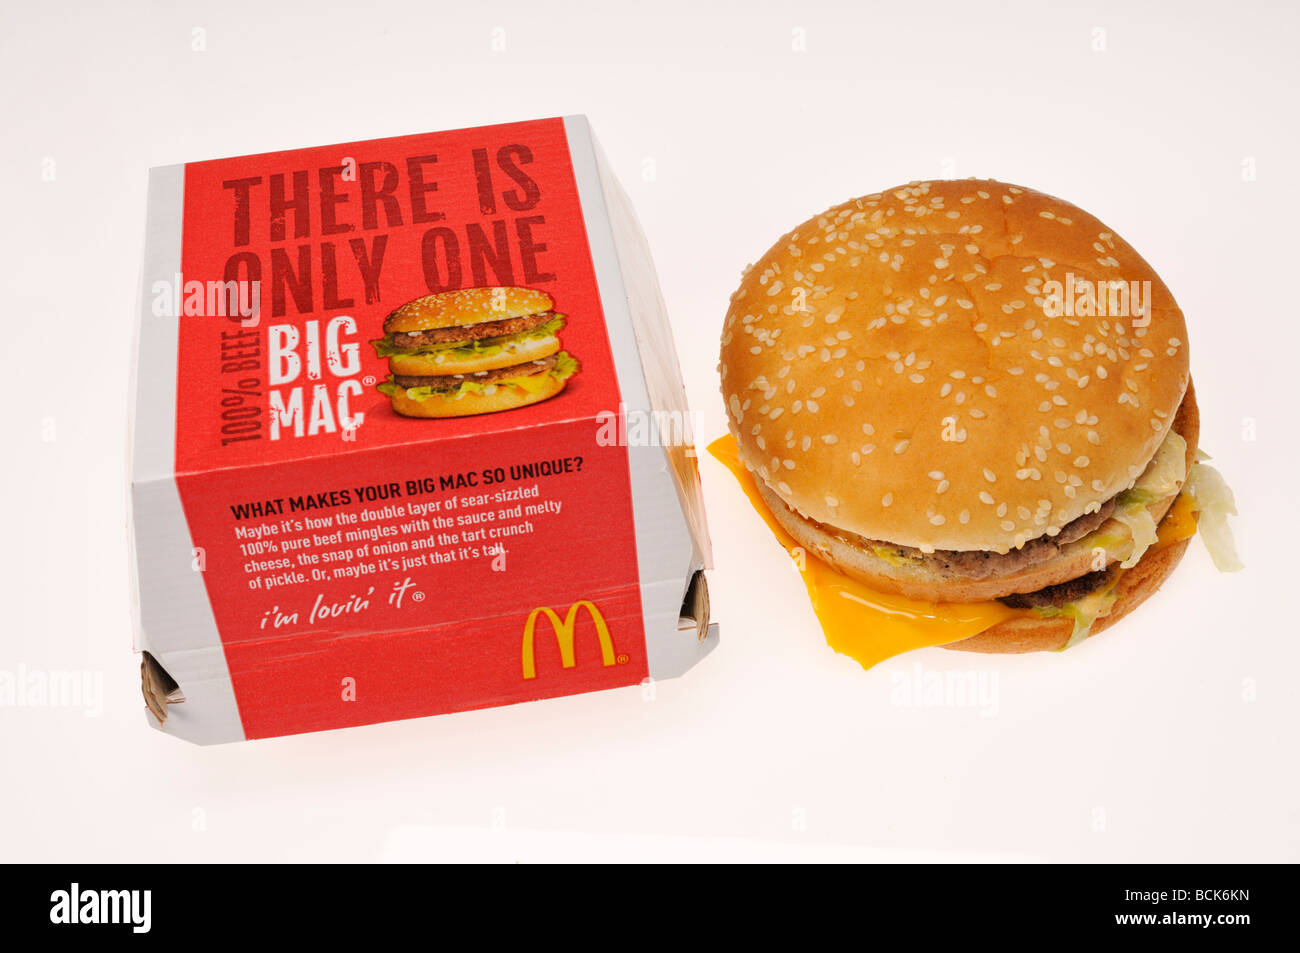 Mcdonalds Big Mac with packaging on white background. - Stock Image